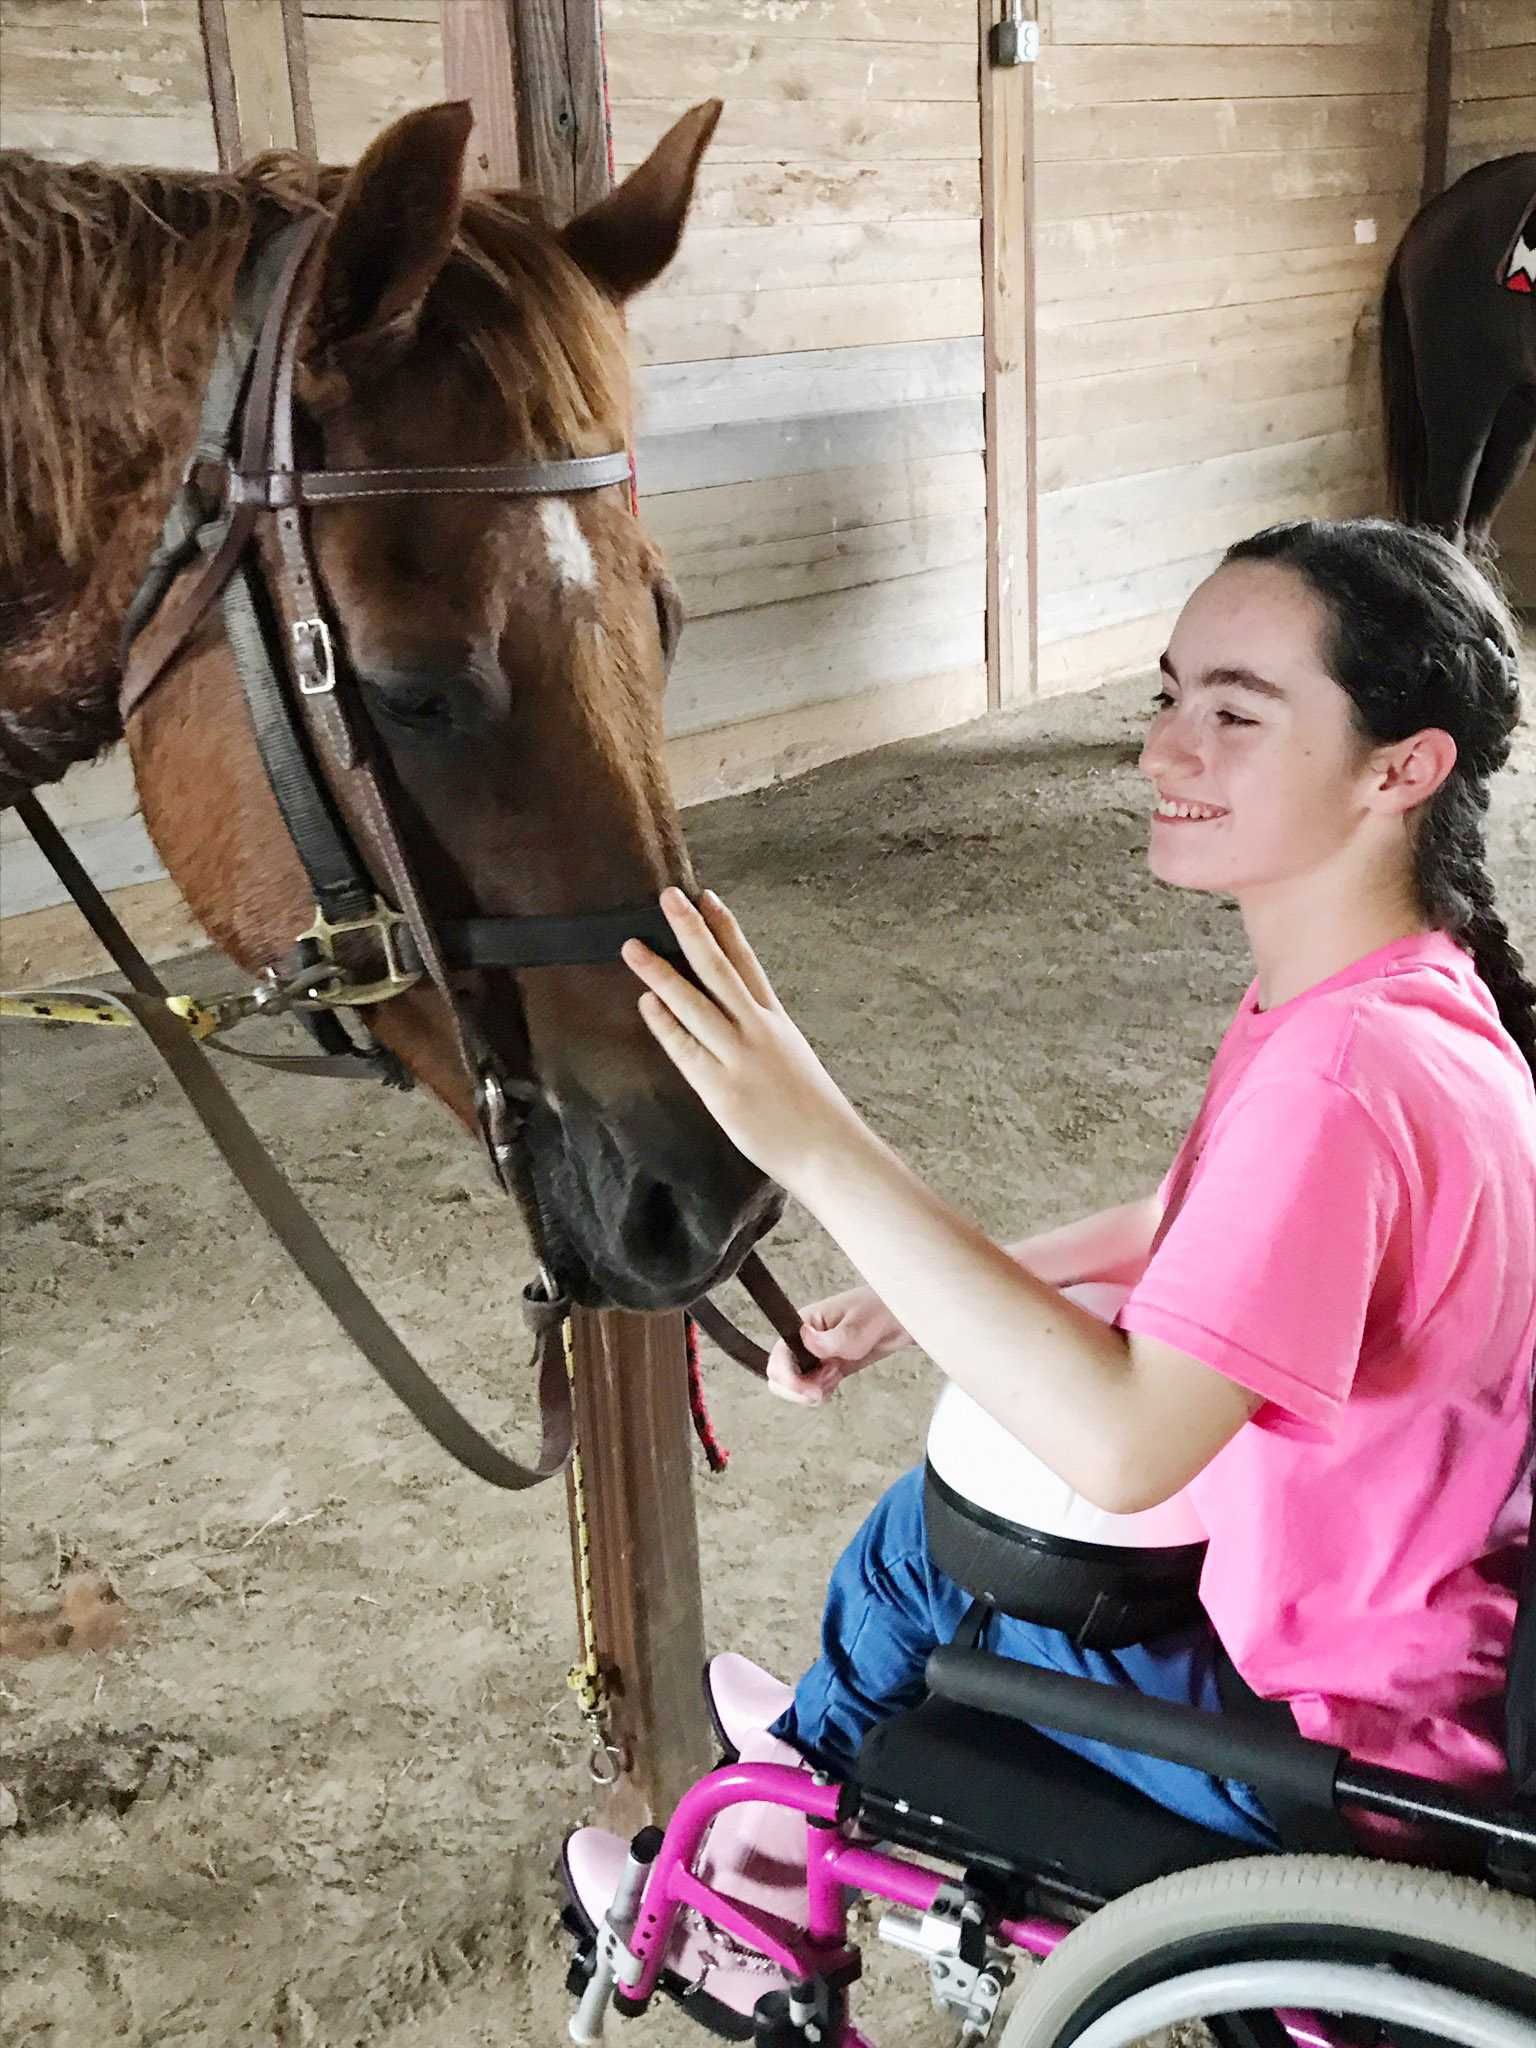 CHS sophomore Jewell Cox attends horse therapy sessions at The REATH Center in Campbellsville, and will demonstrate riding techniques at a free fall festival at the center on Saturday, Oct. 14, from 11 a.m. to 4 p.m.